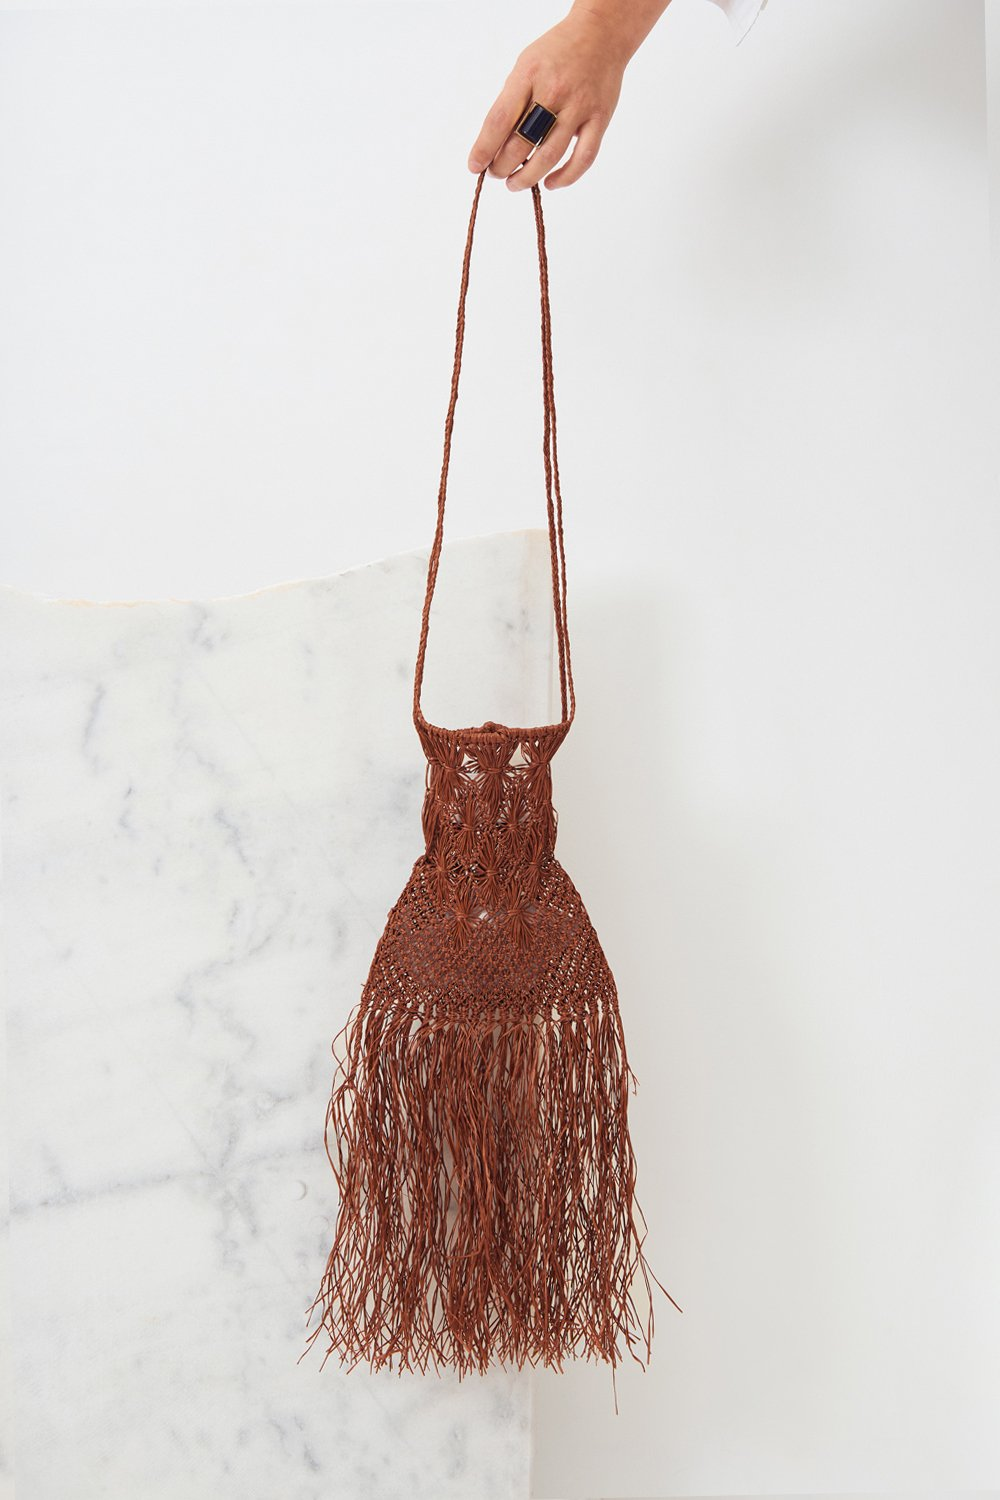 Mini-sac raphia Biim - Marron - Antik Batik (photo)